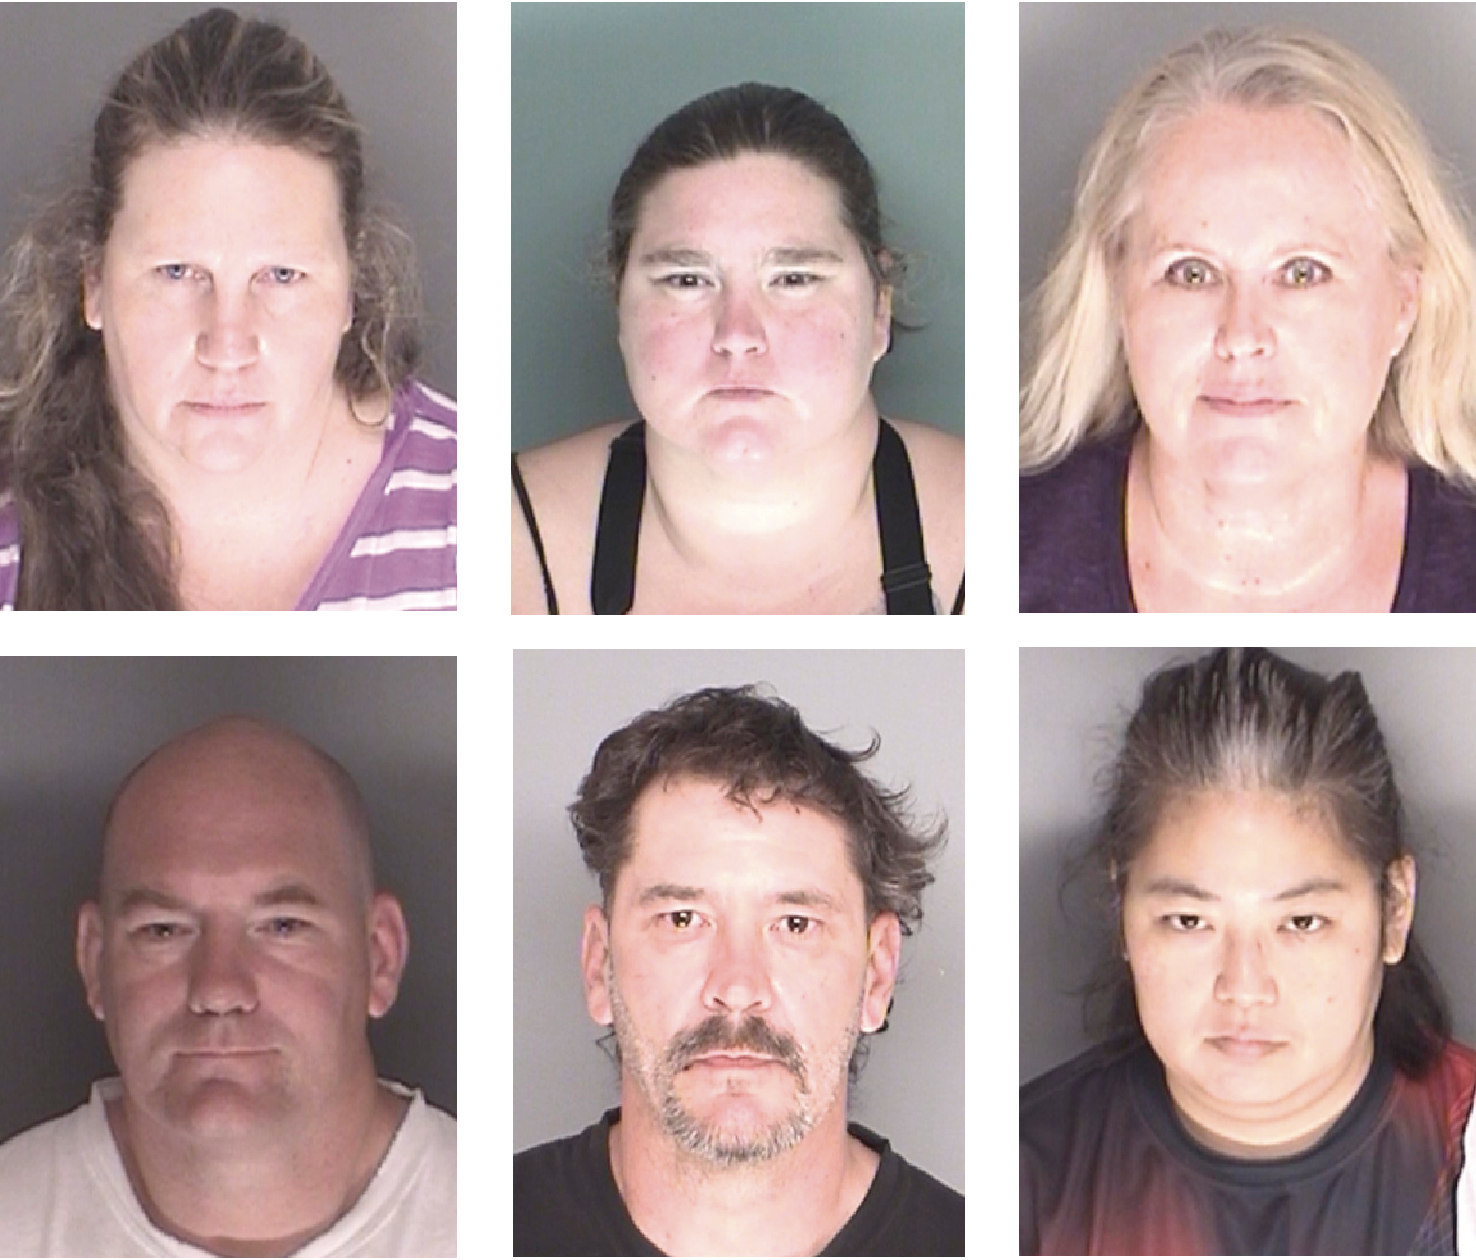 Details Discovered in Public Works Embezzlement Case - The